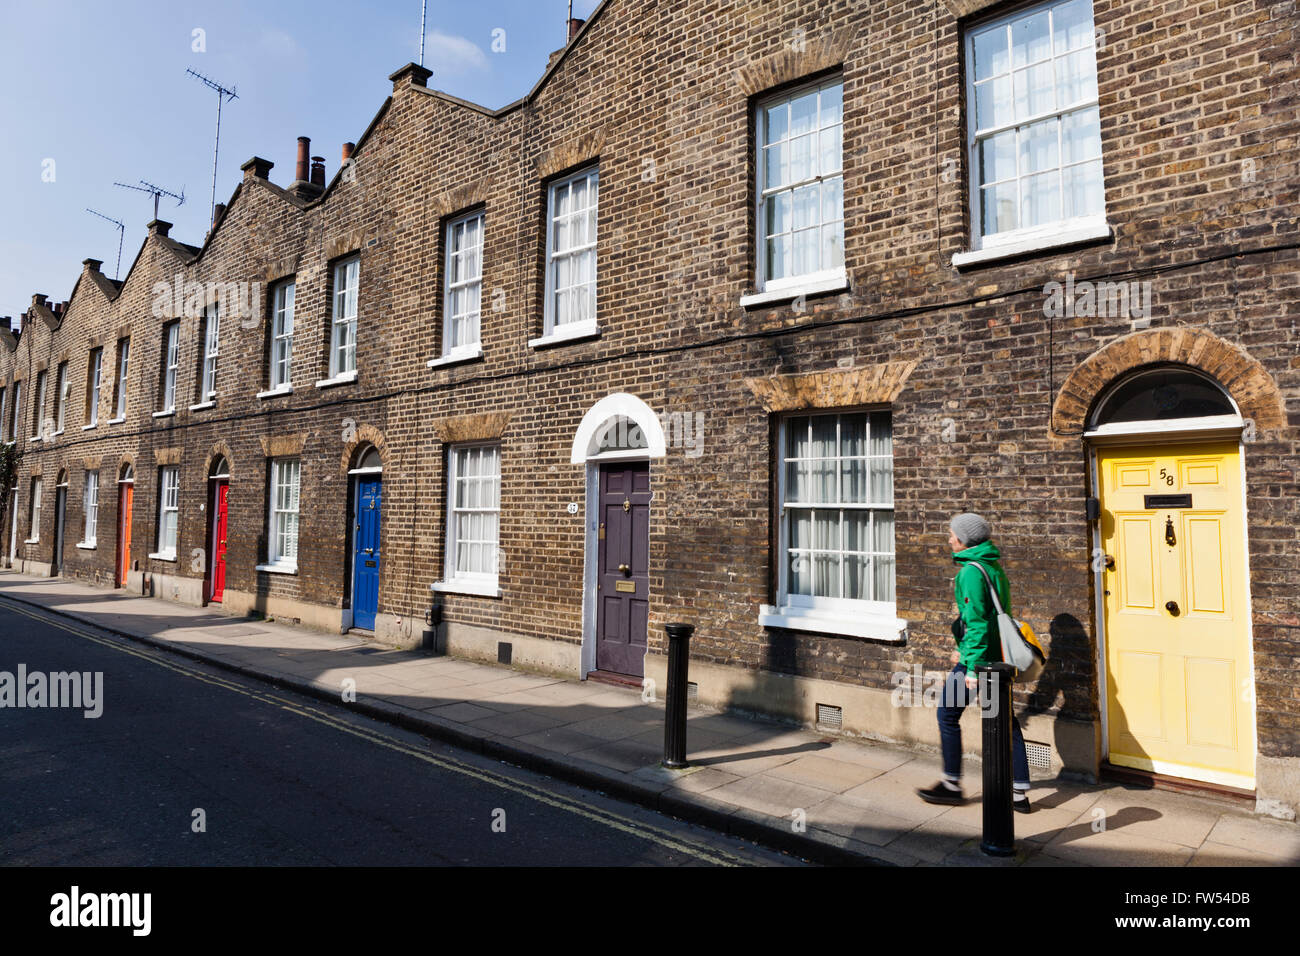 Victorian brick terraced houses on Roupell Street in Lambeth, London. - Stock Image